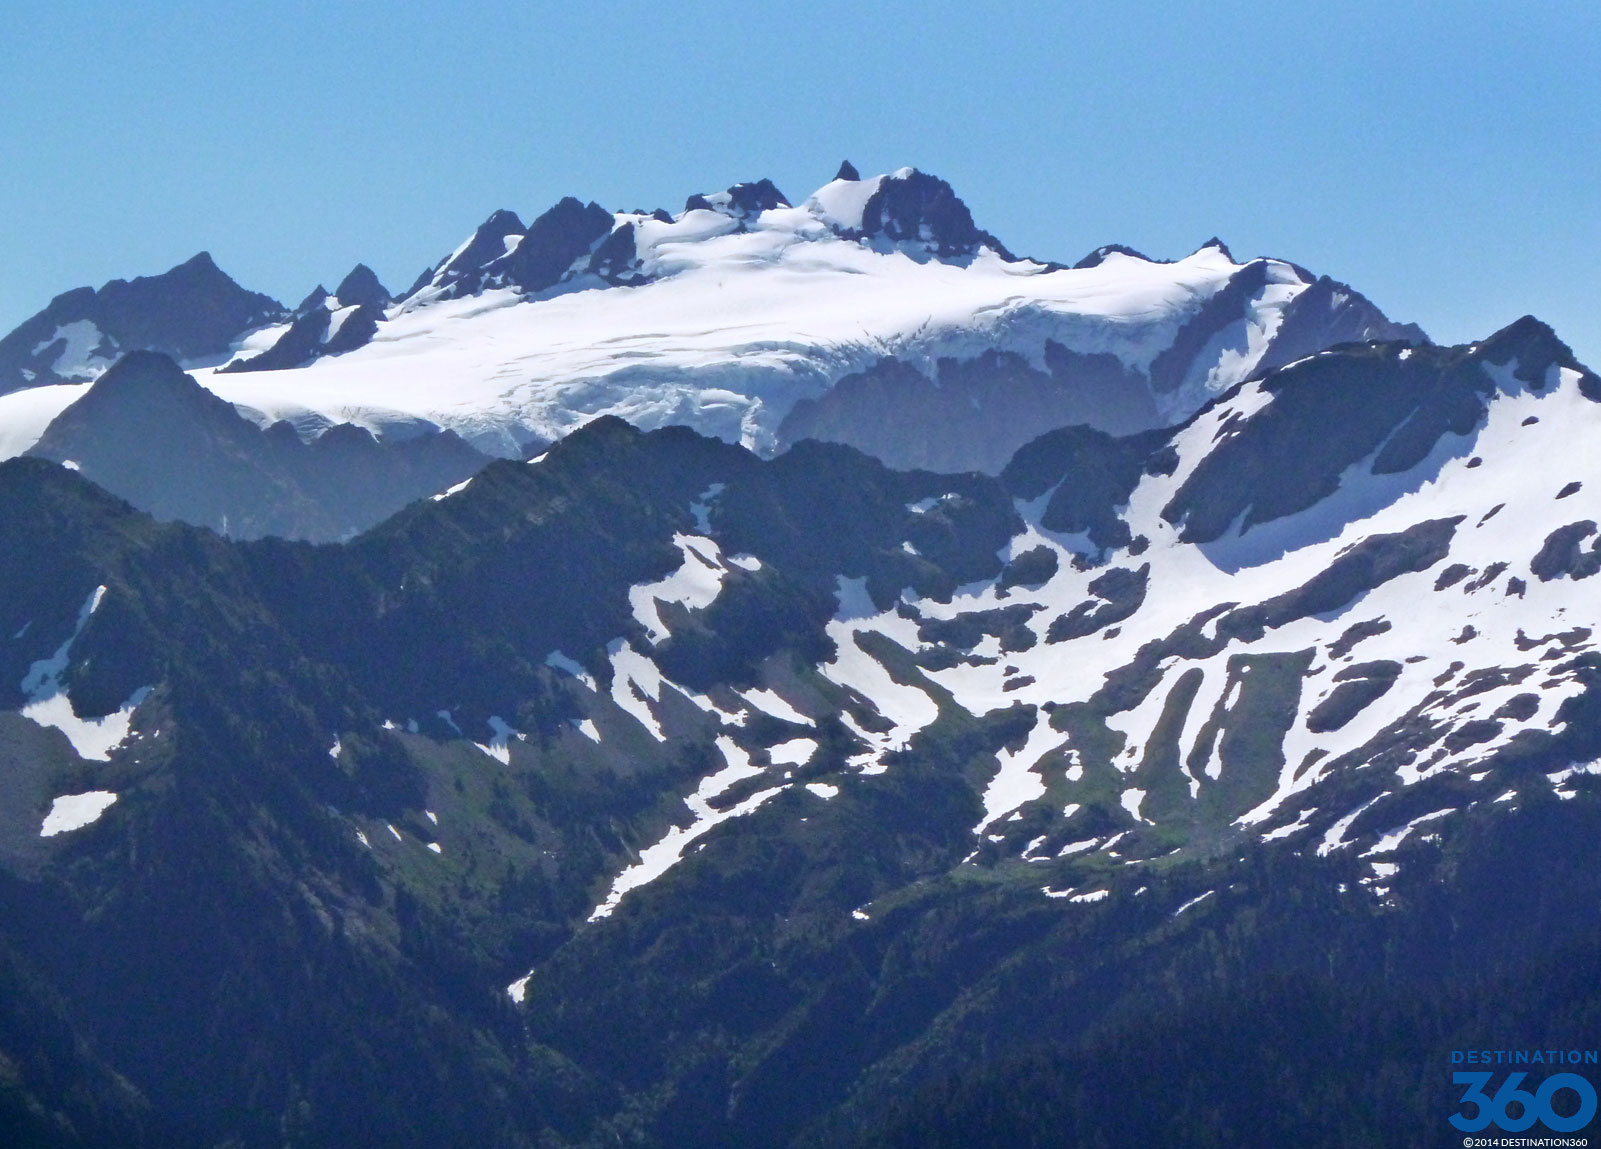 Mount olympus the tallest mountain in the olympic mountains of mount olympus sciox Choice Image